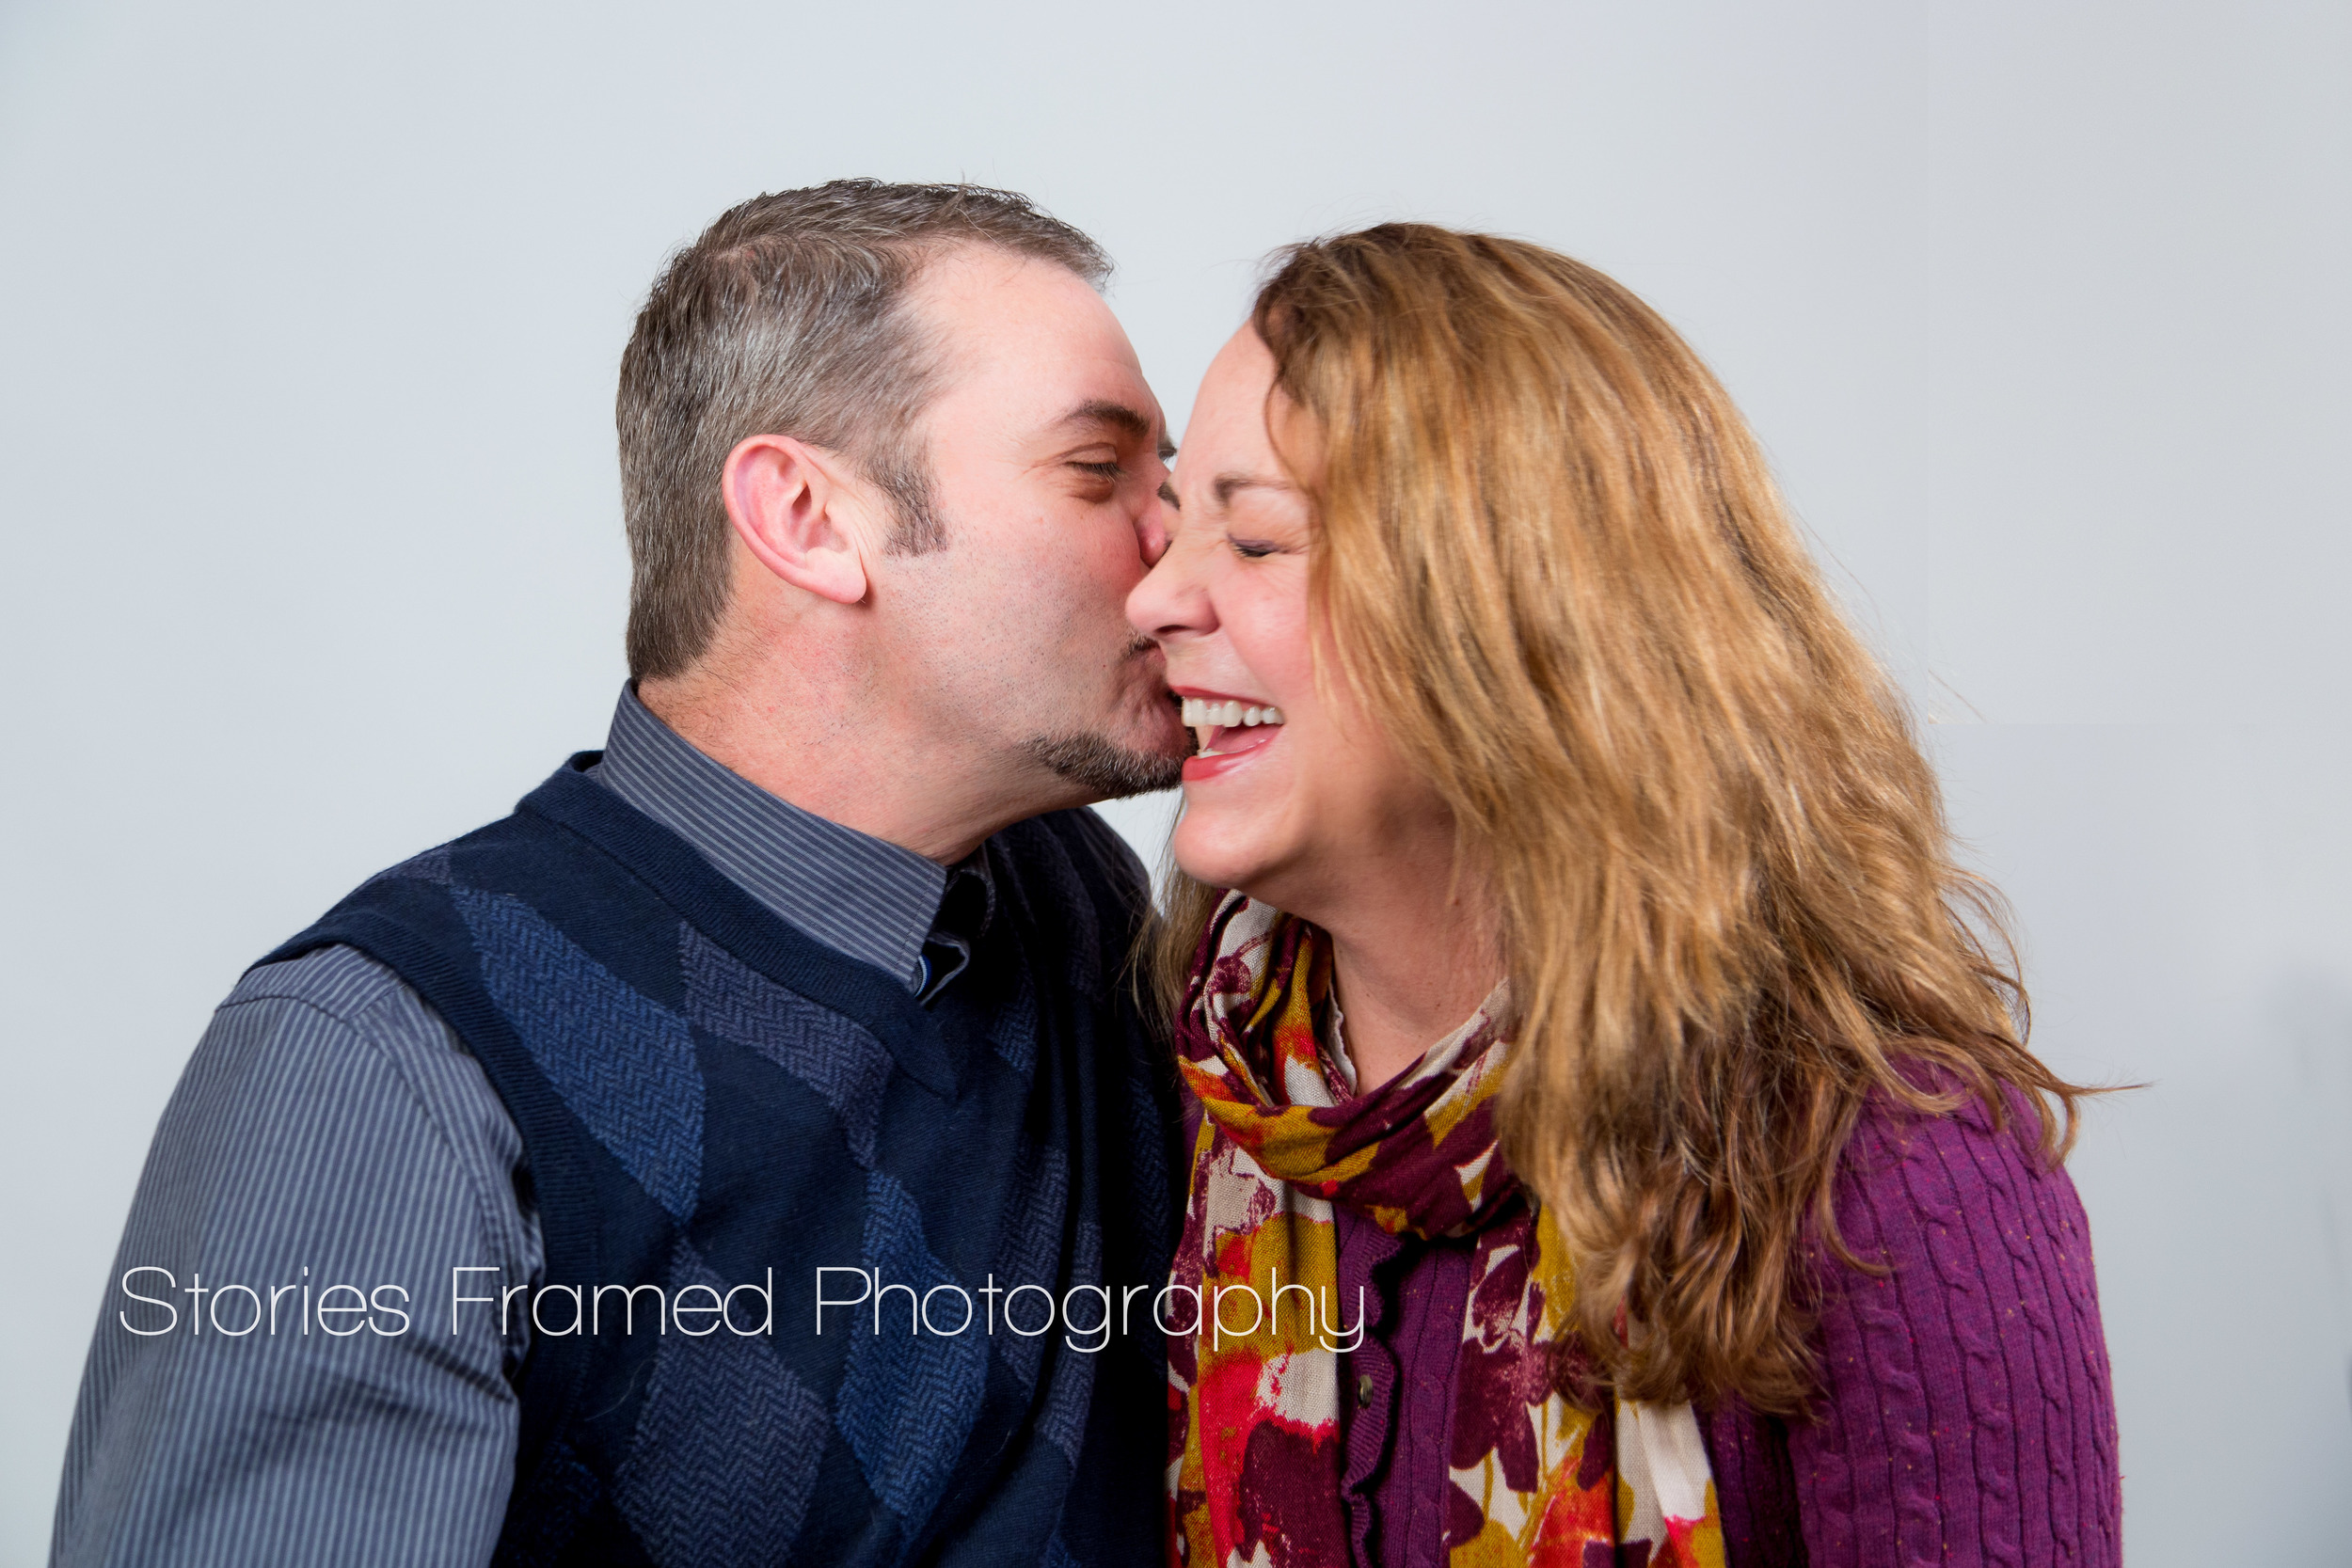 This lovely couple was relaxed and happy - and it shows! That's a real, genuine smile.